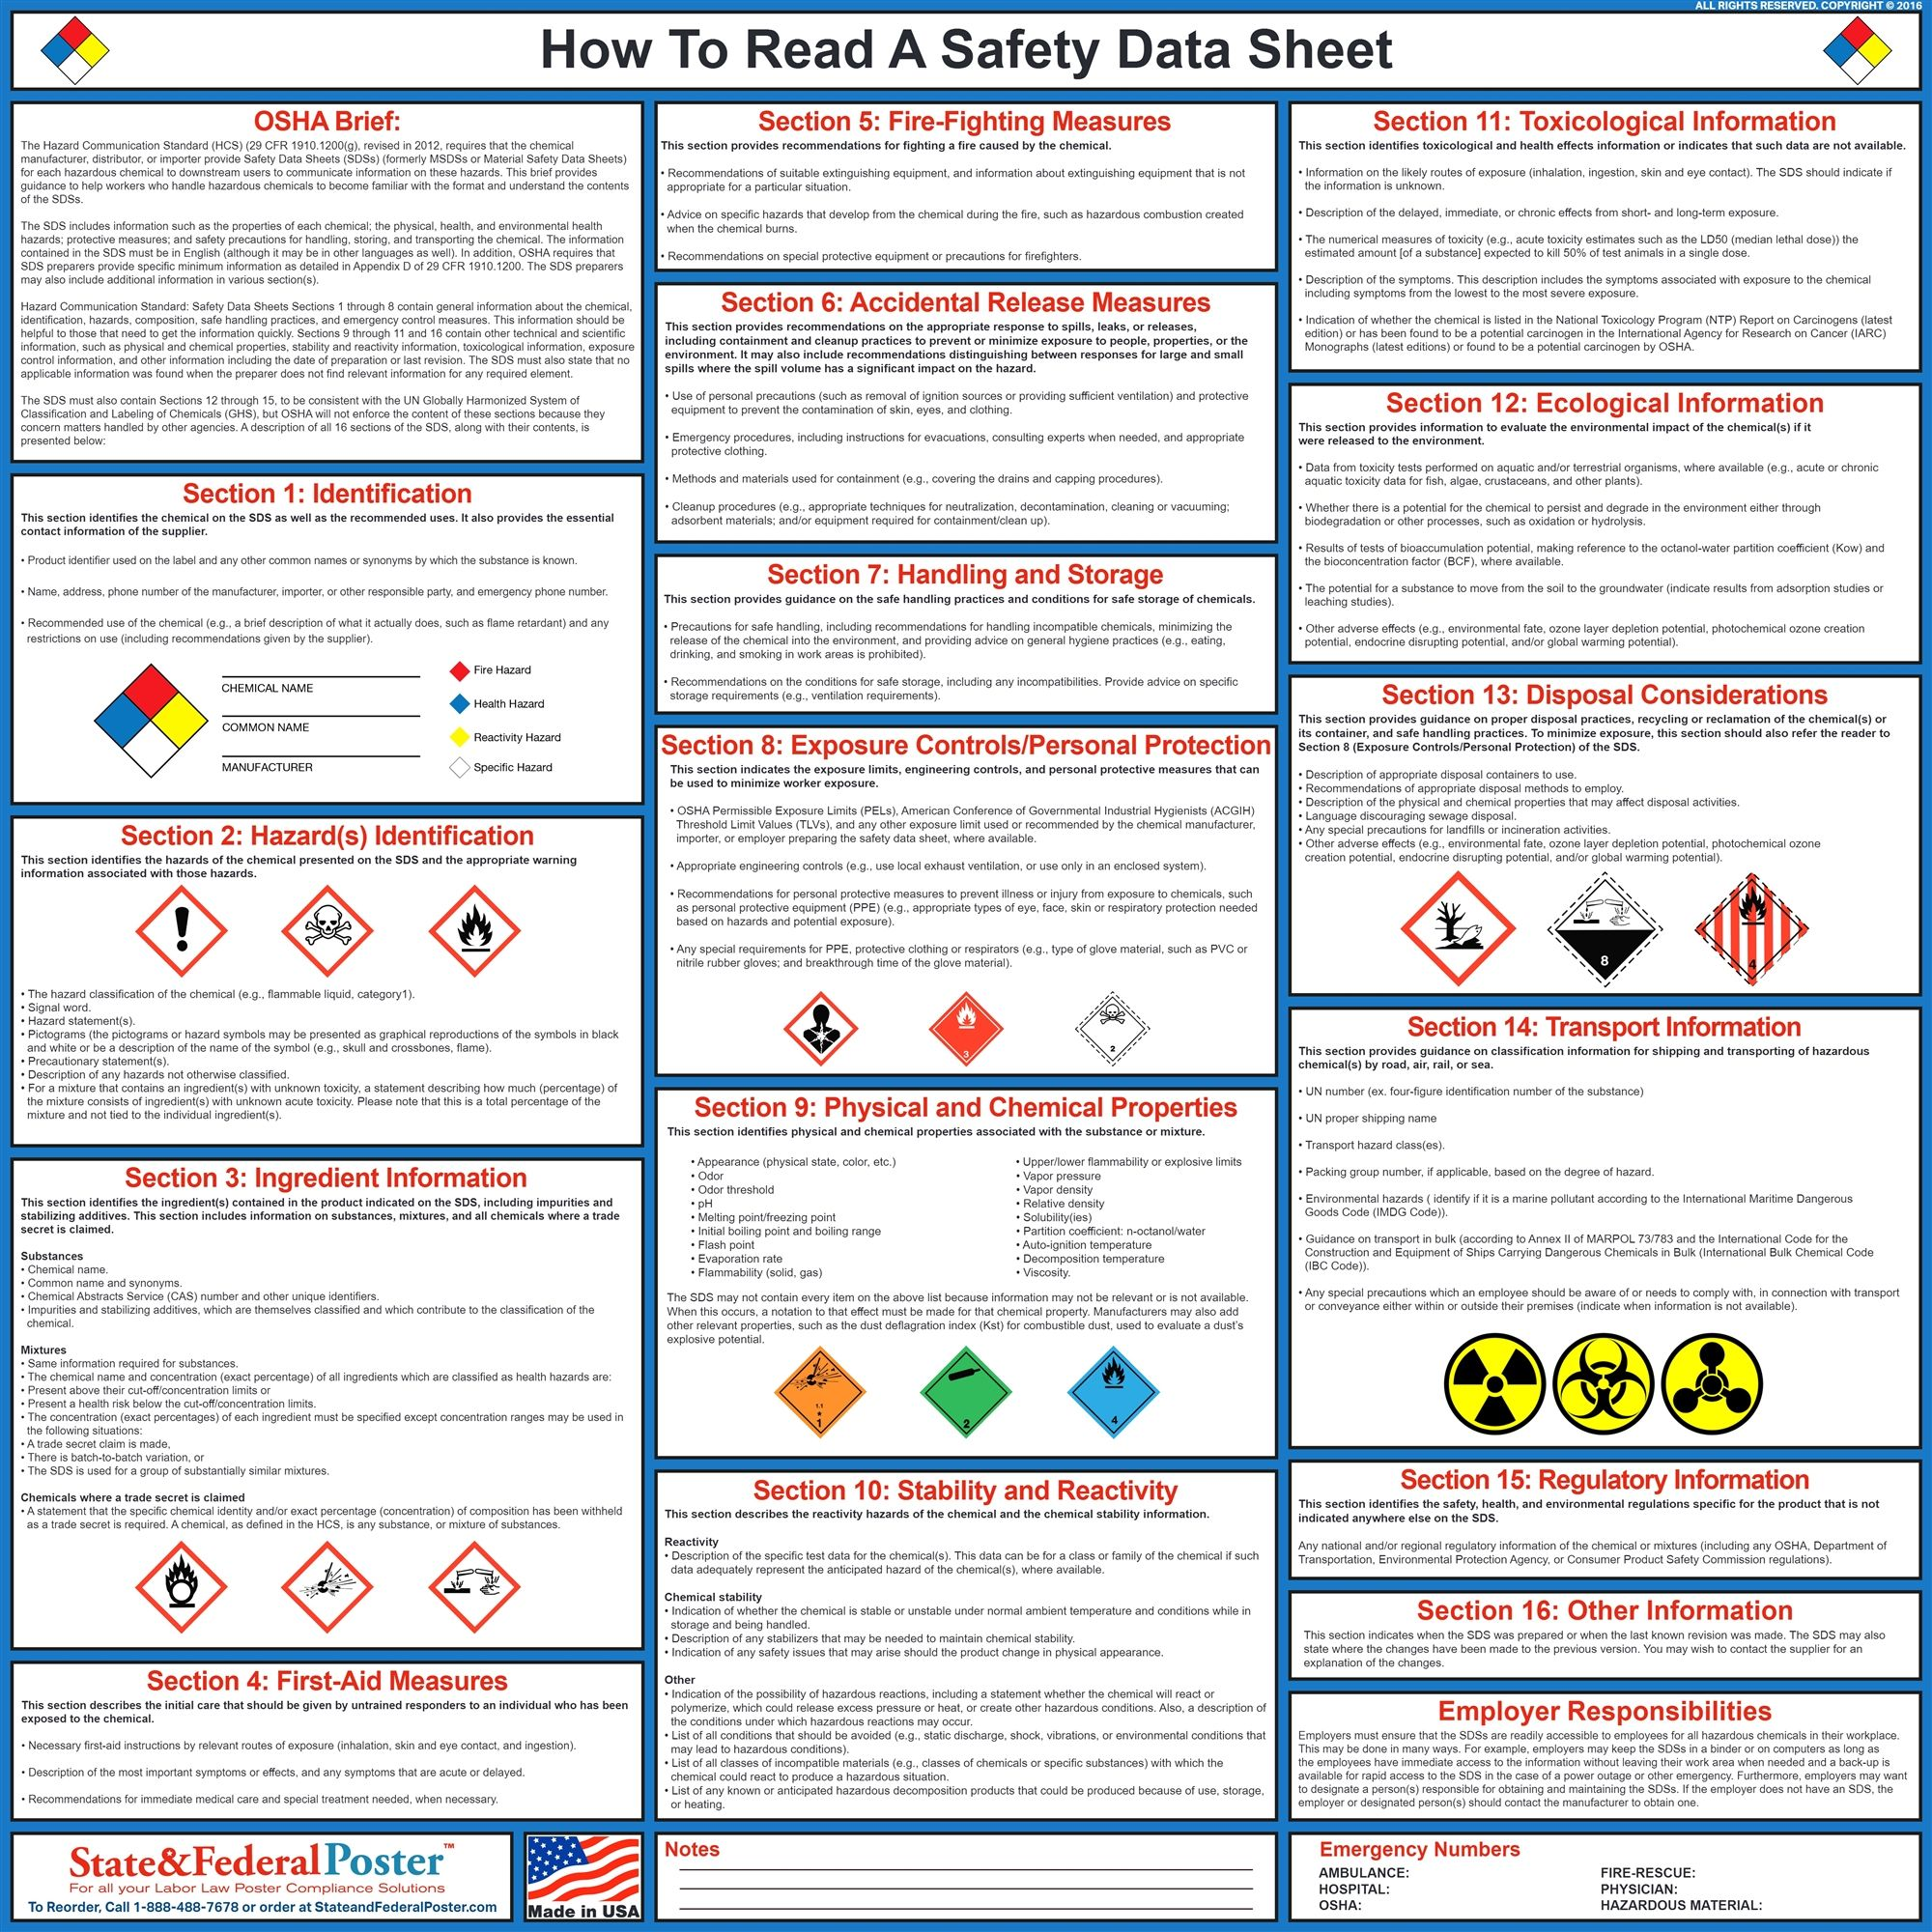 How To Read A Safety Data Sheet Data sheets, Health and